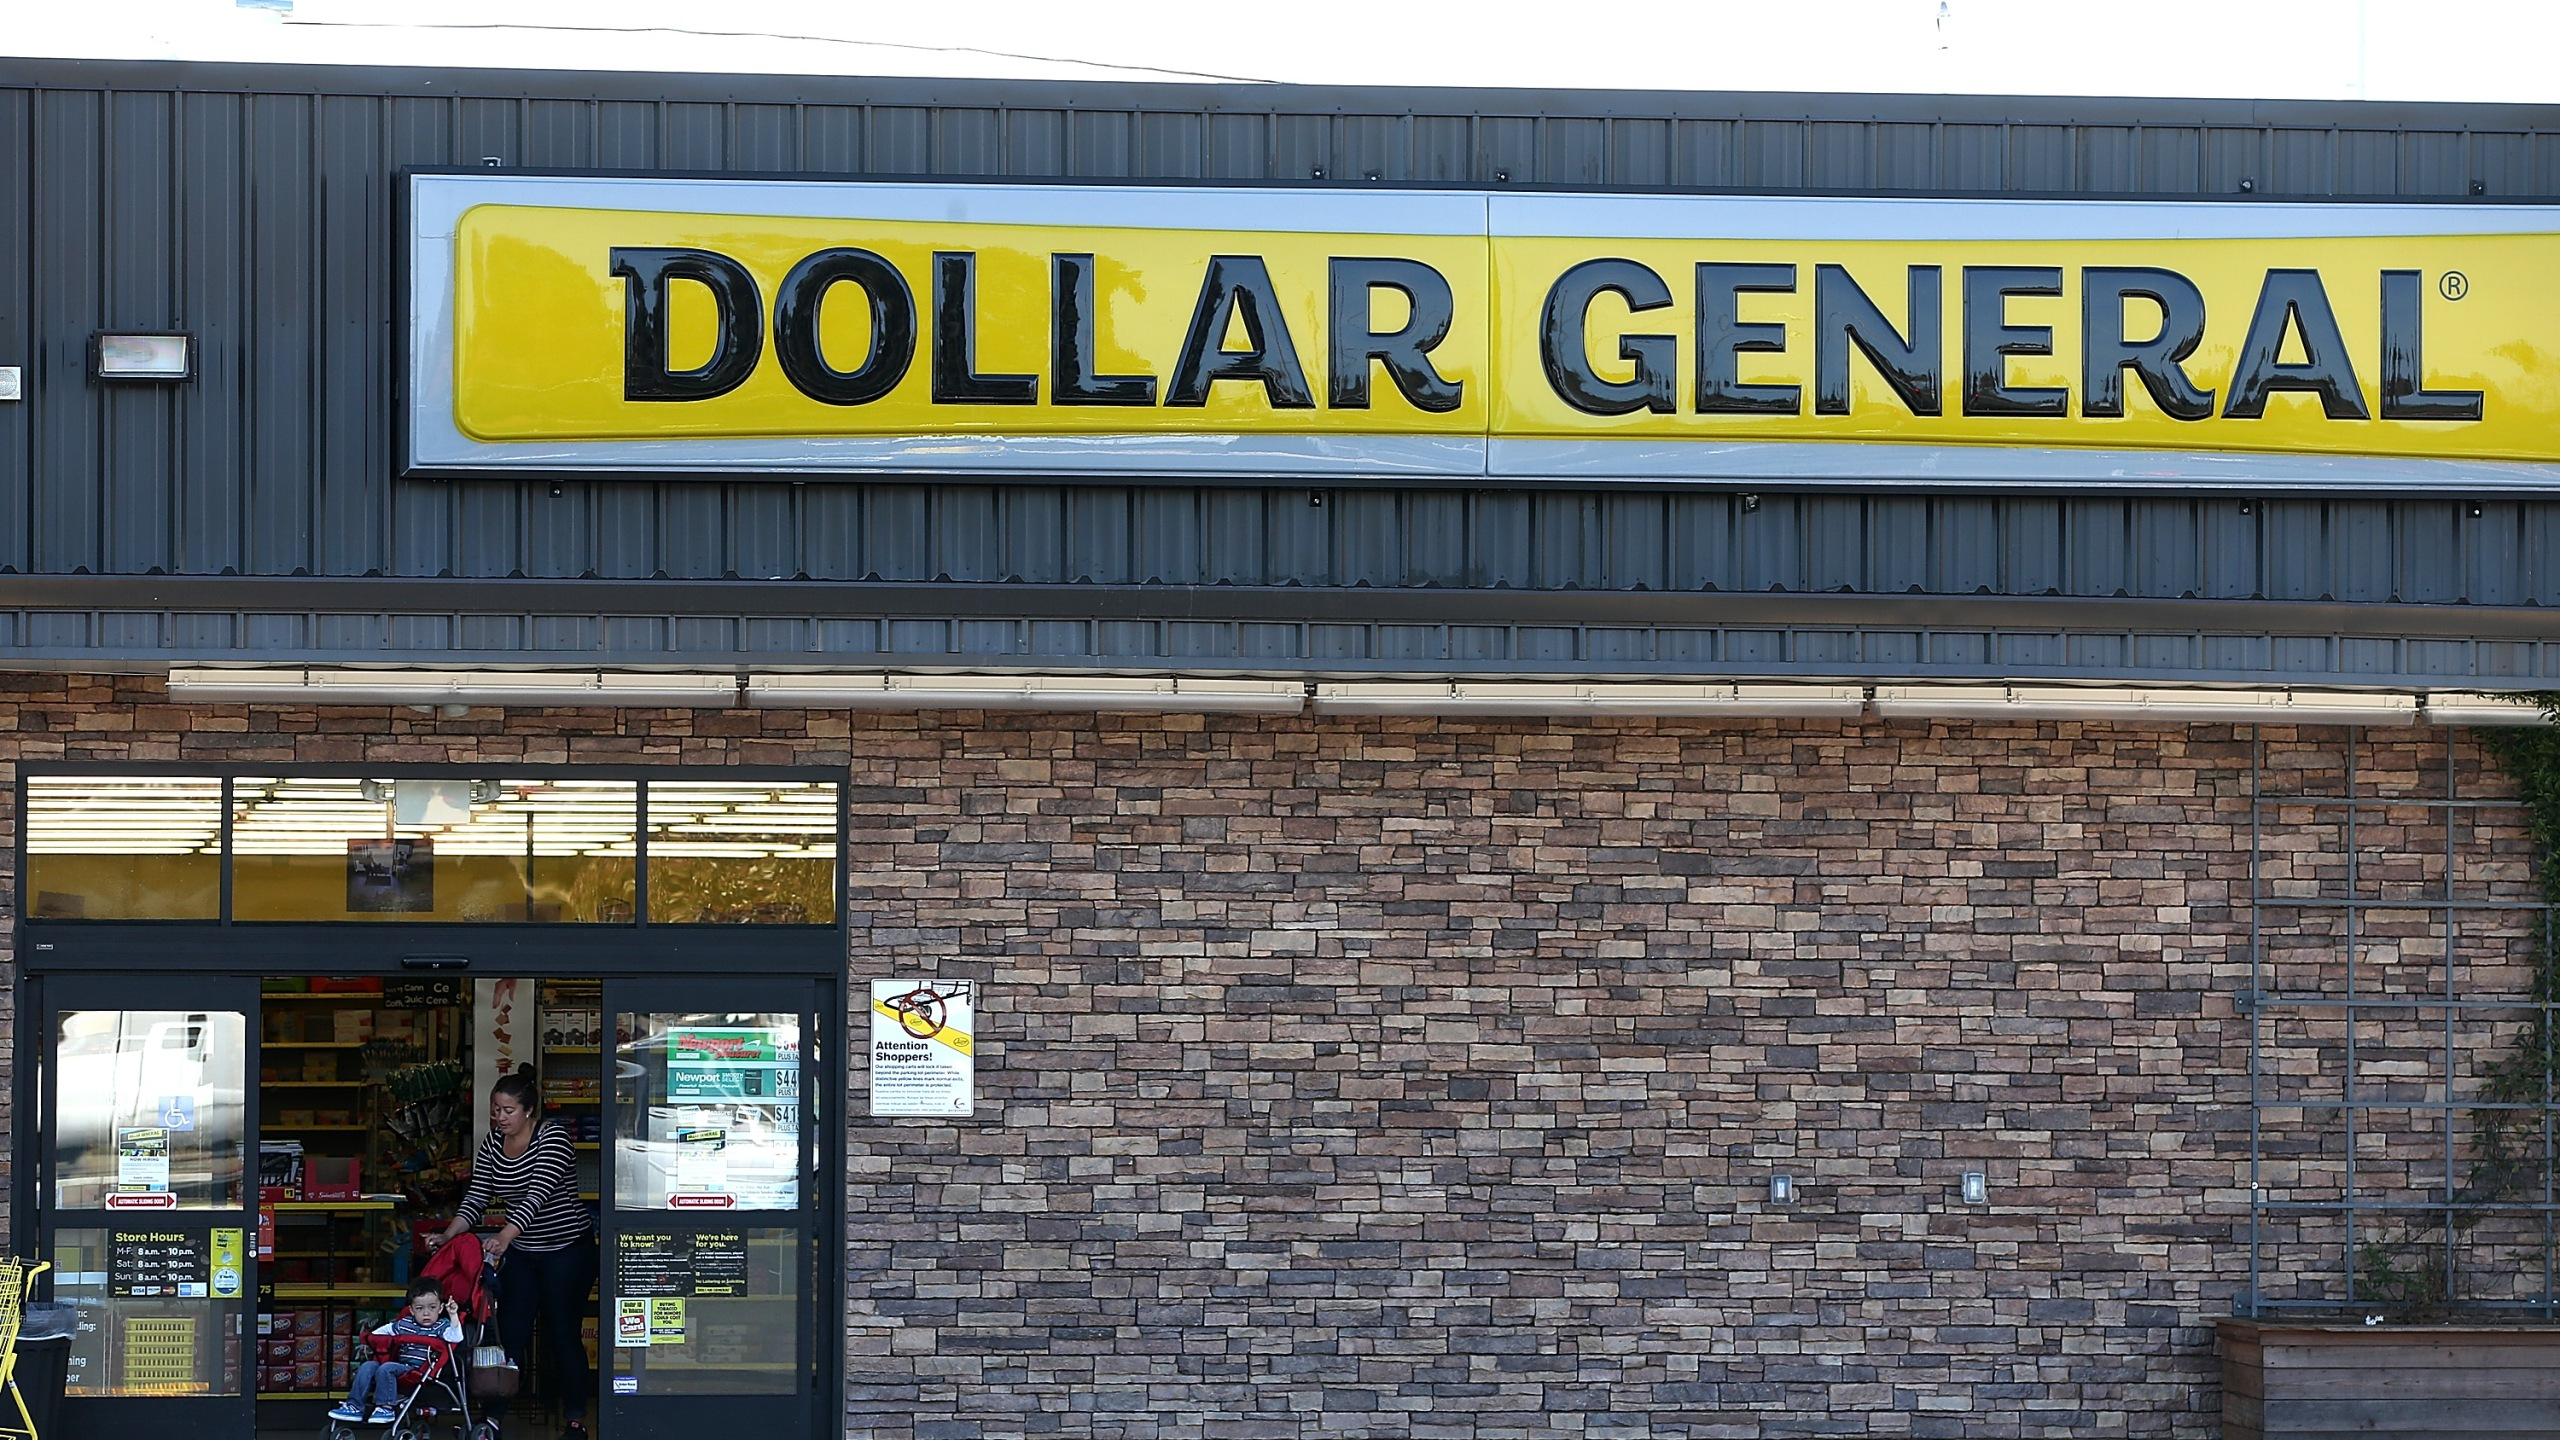 Dollar General To Open Over 700 New Stores In 2015